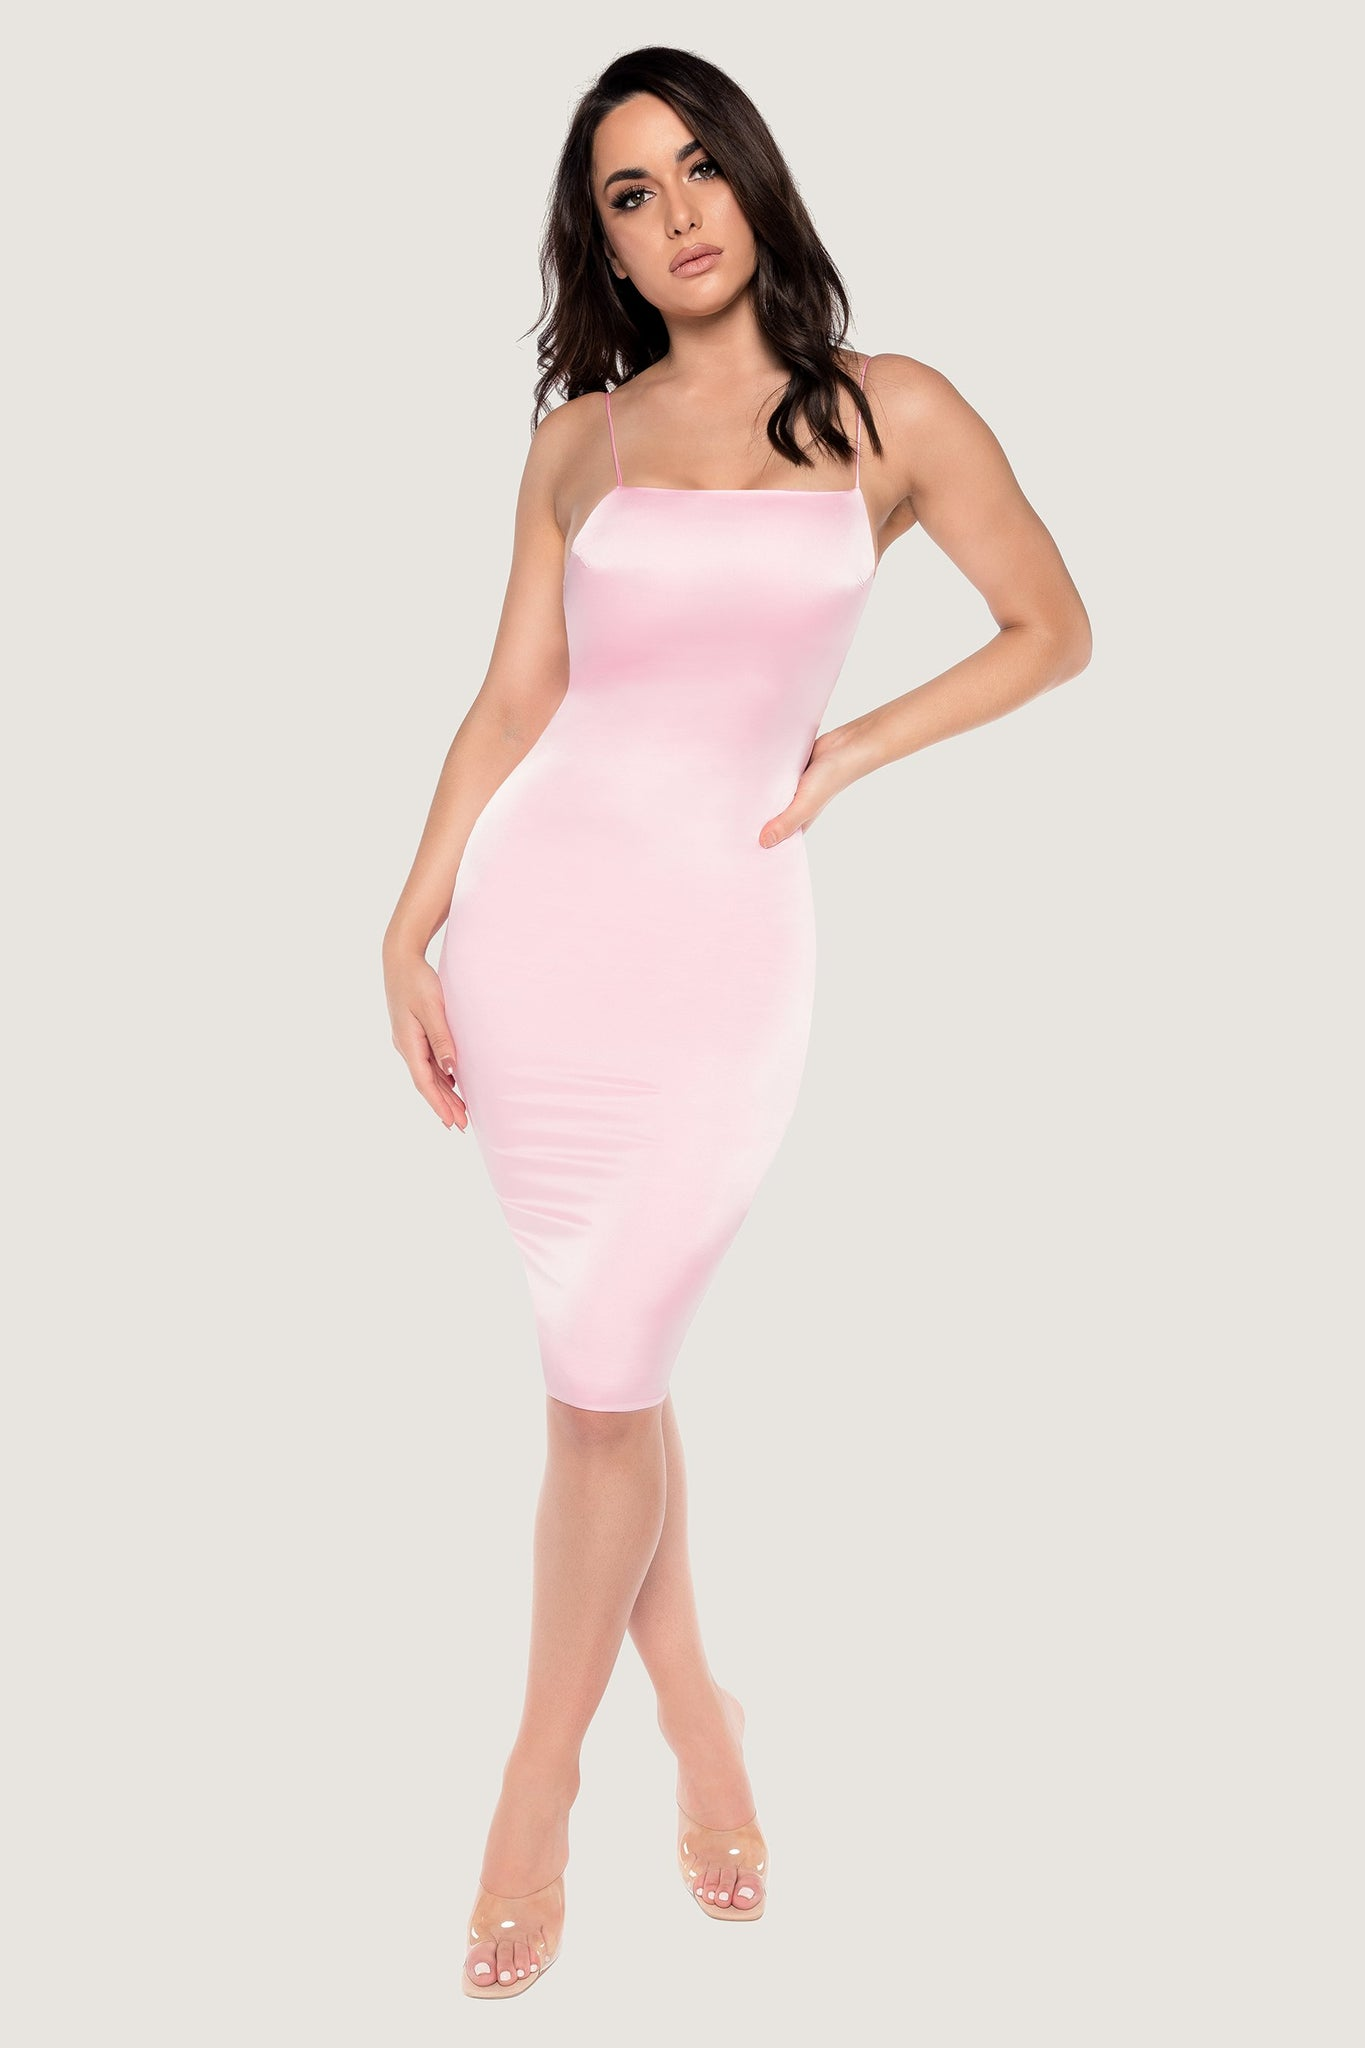 Bebe Thin Strap Lace Up Midi Dress - Baby Pink - MESHKI